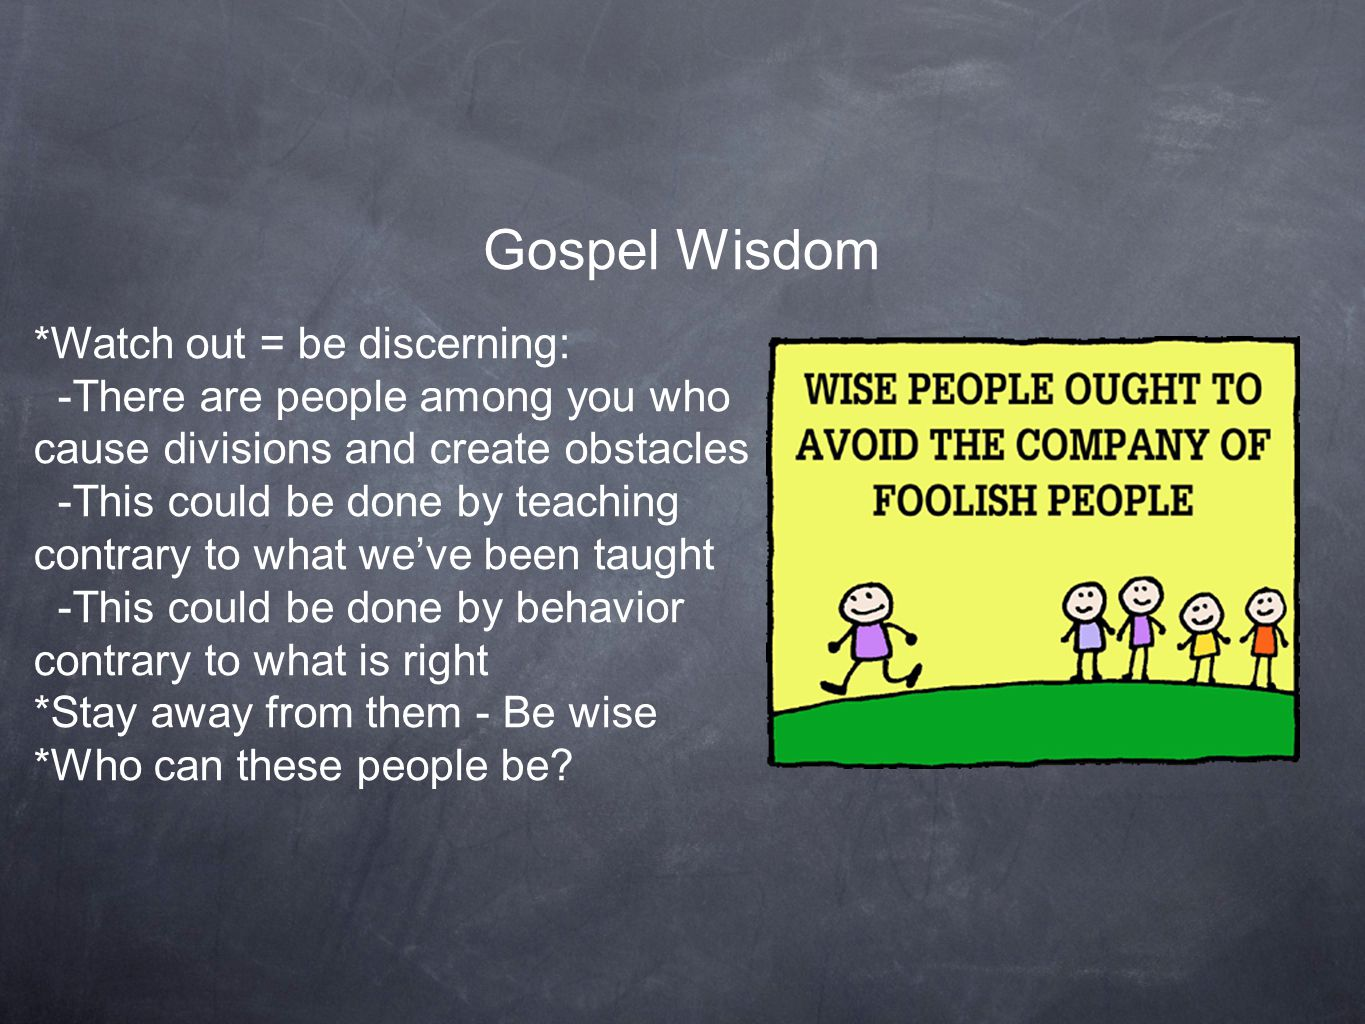 Gospel Wisdom *Watch out = be discerning: -There are people among you who cause divisions and create obstacles -This could be done by teaching contrary to what we've been taught -This could be done by behavior contrary to what is right *Stay away from them - Be wise *Who can these people be?